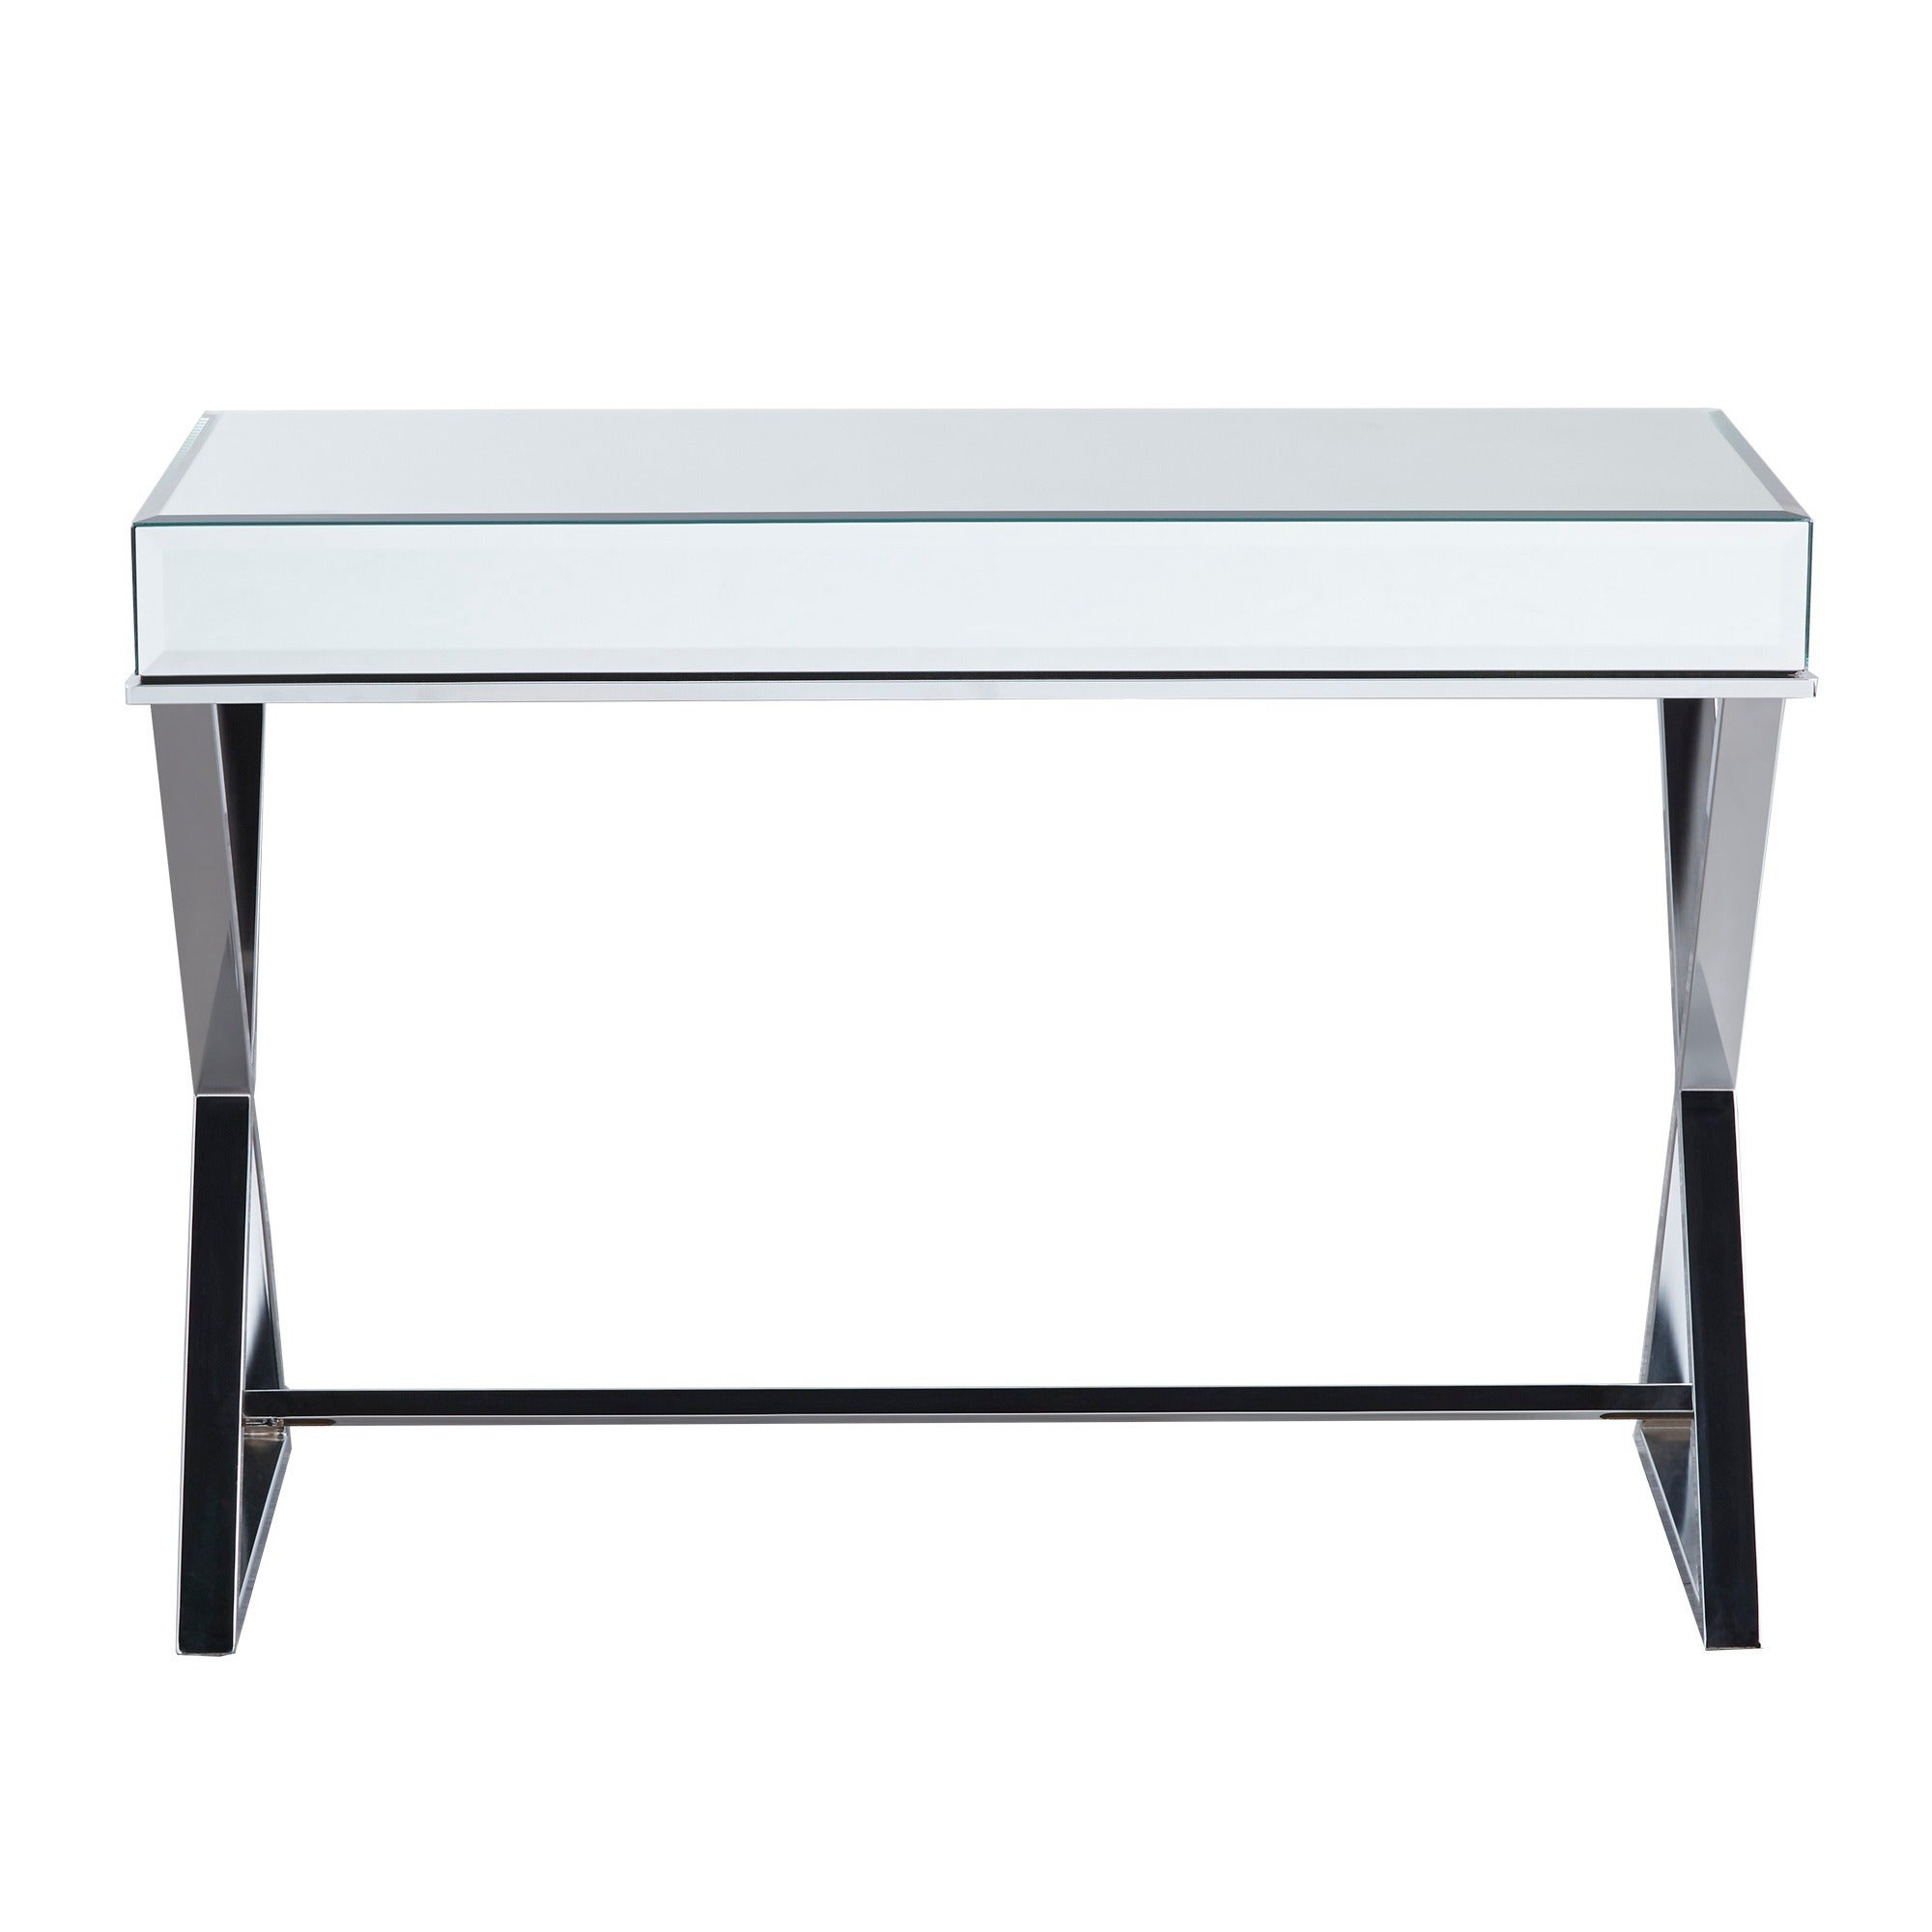 Omni X-base Mirrored Top 1-drawer Campaign Desk by iNSPIRE Q Bold - Free  Shipping Today - Overstock.com - 18598289